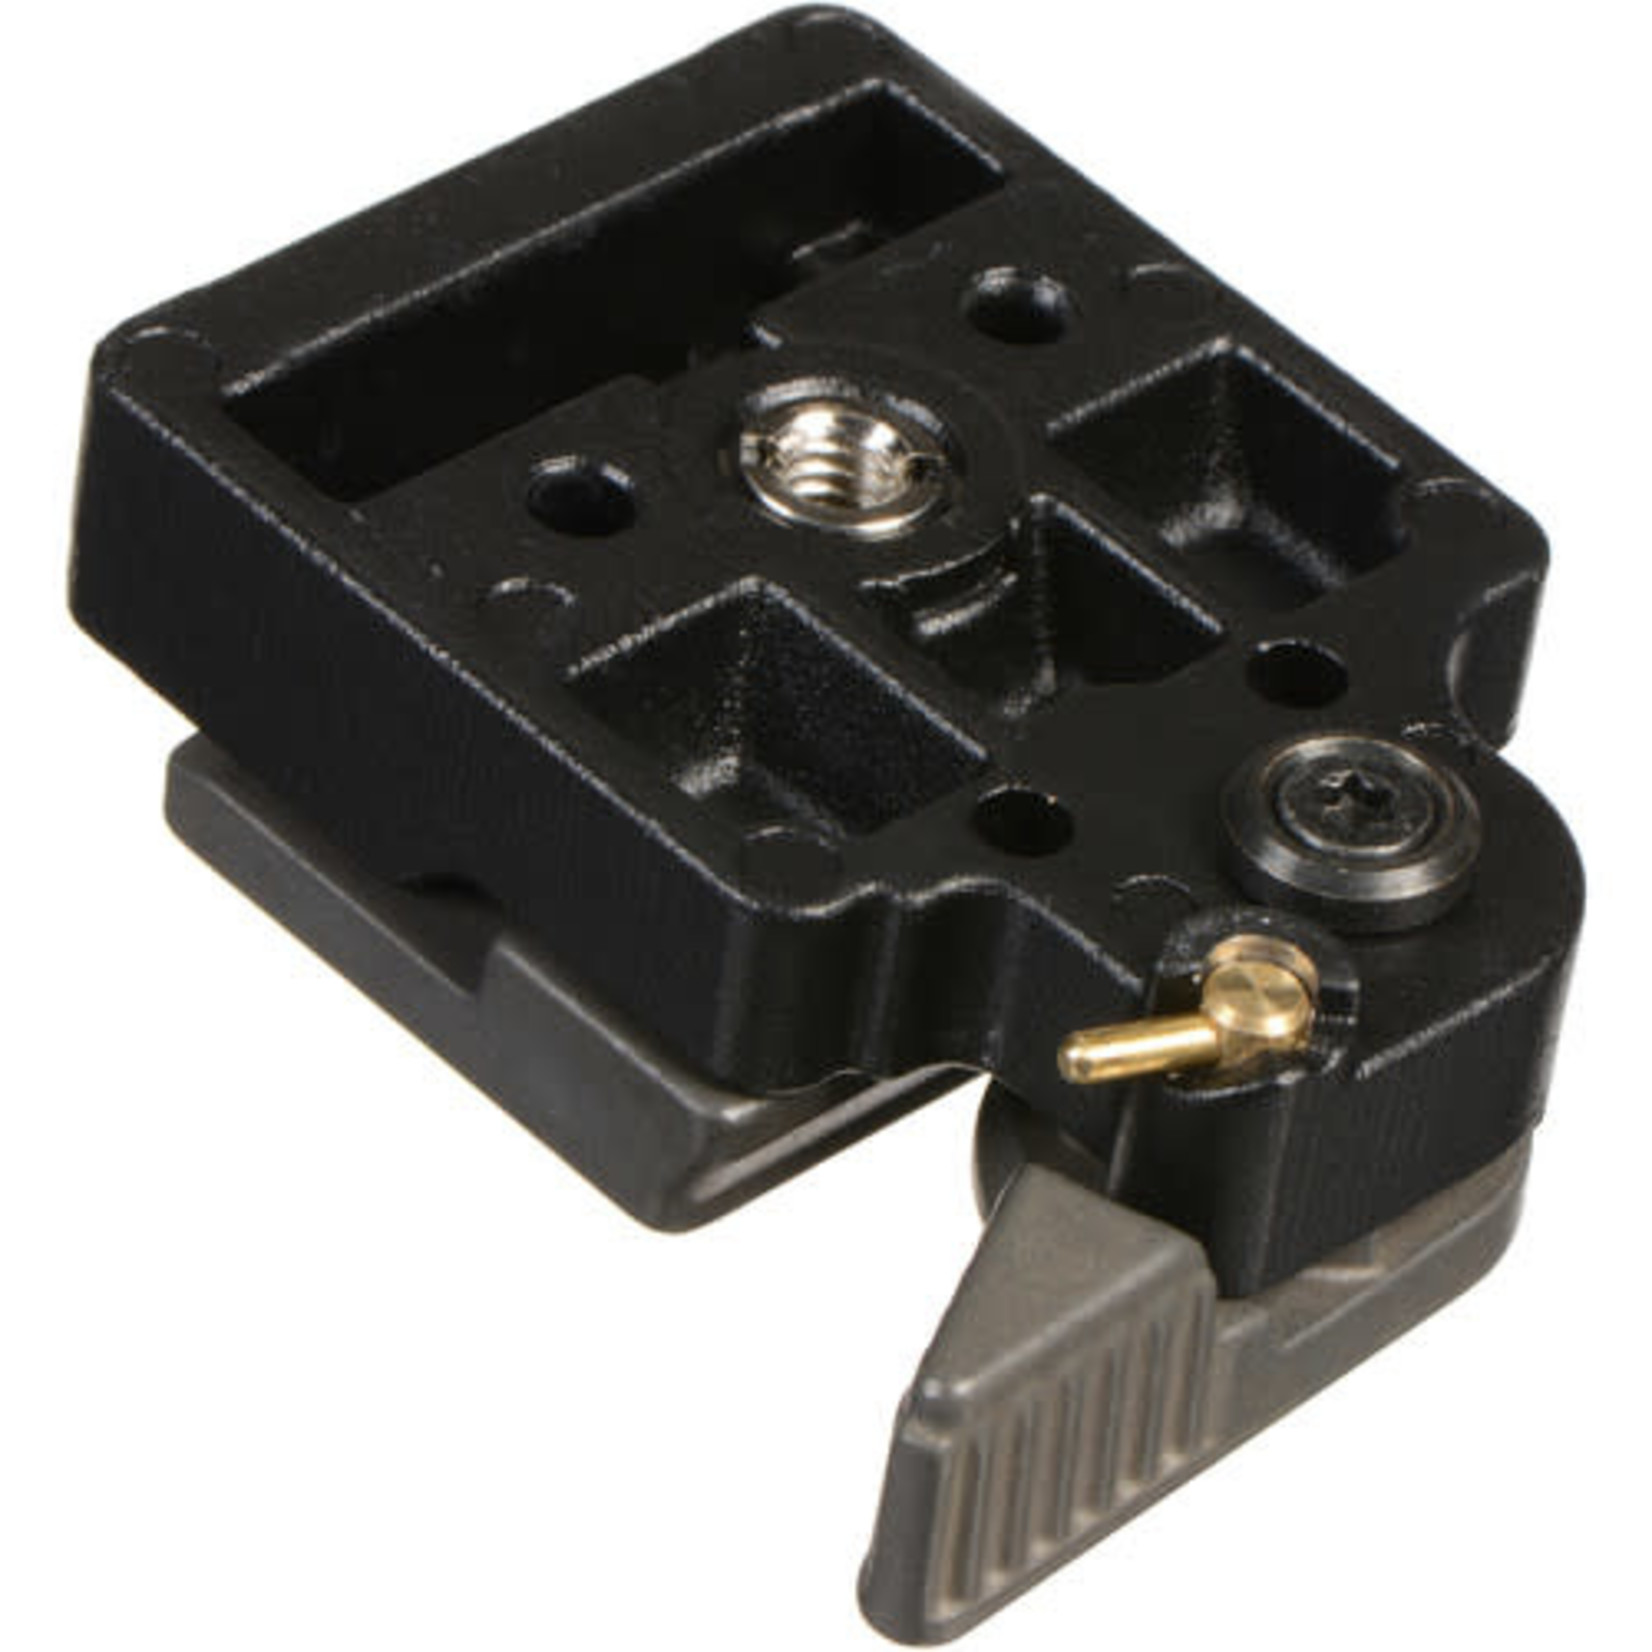 Manfrotto Manfrotto 323 RC2 System Quick Release Adapter with 200PL-14 Plate